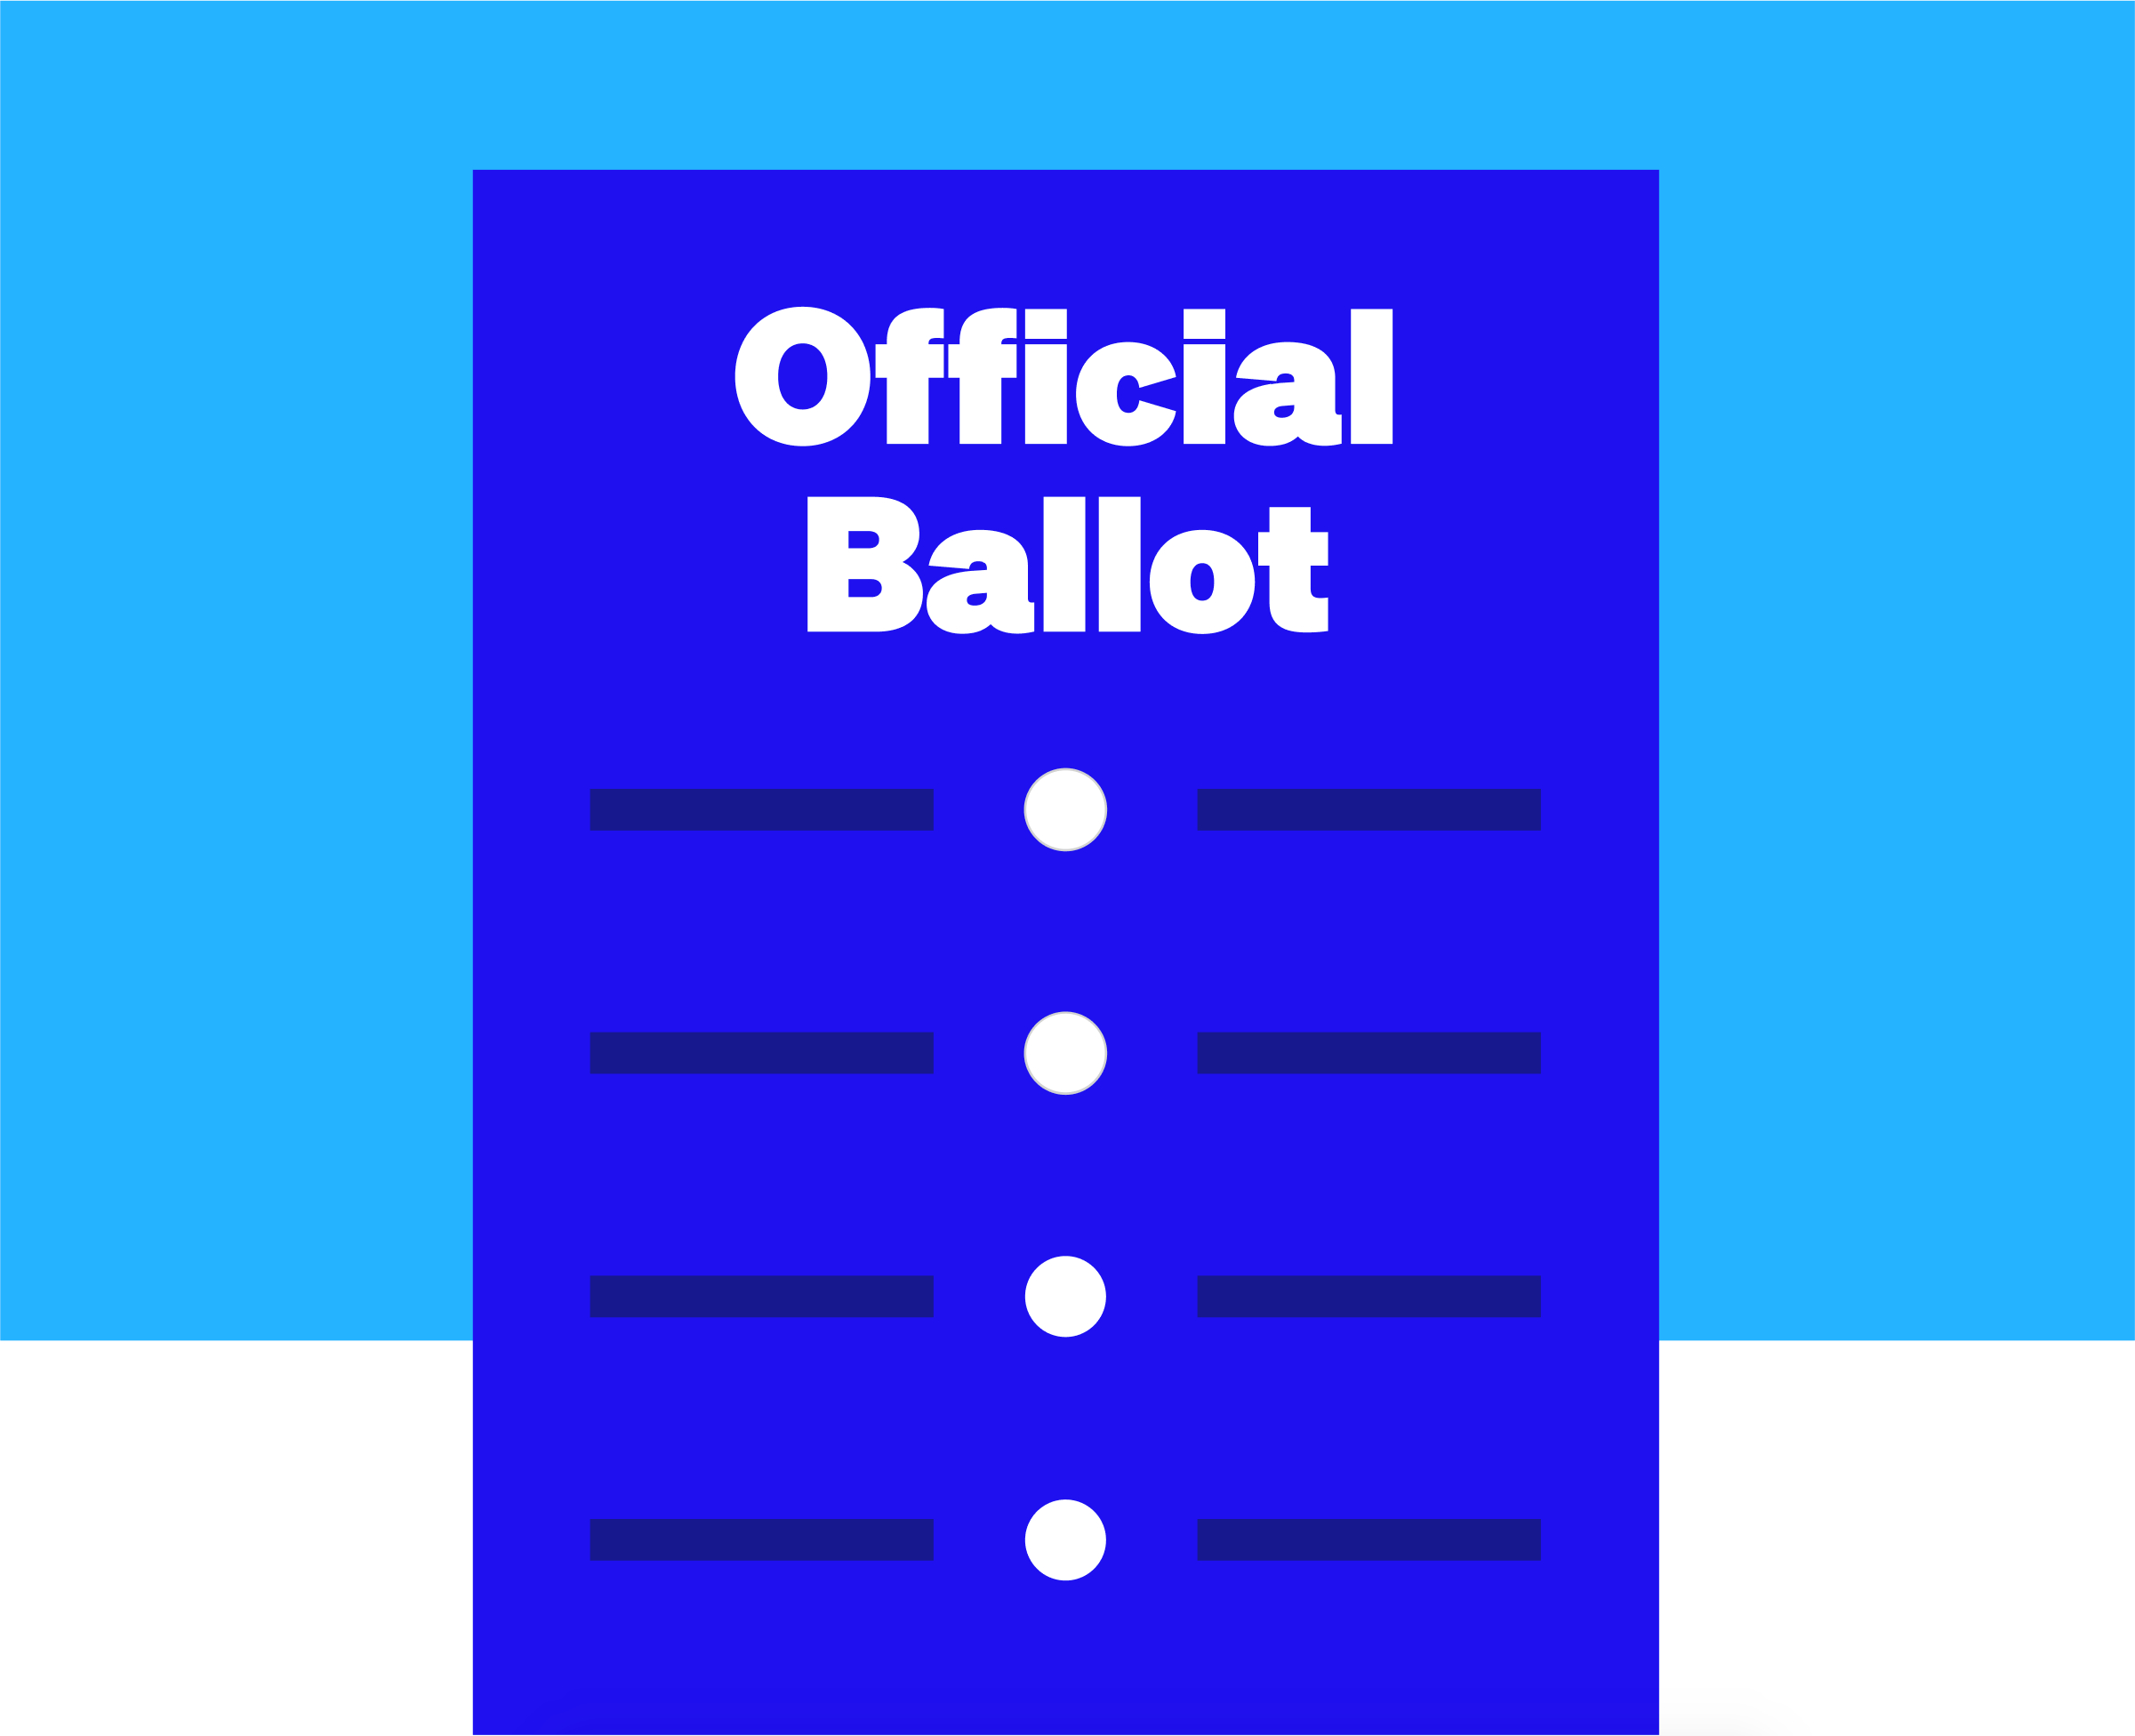 Poorly designed ballots lead to thousands of undercounted votes each year